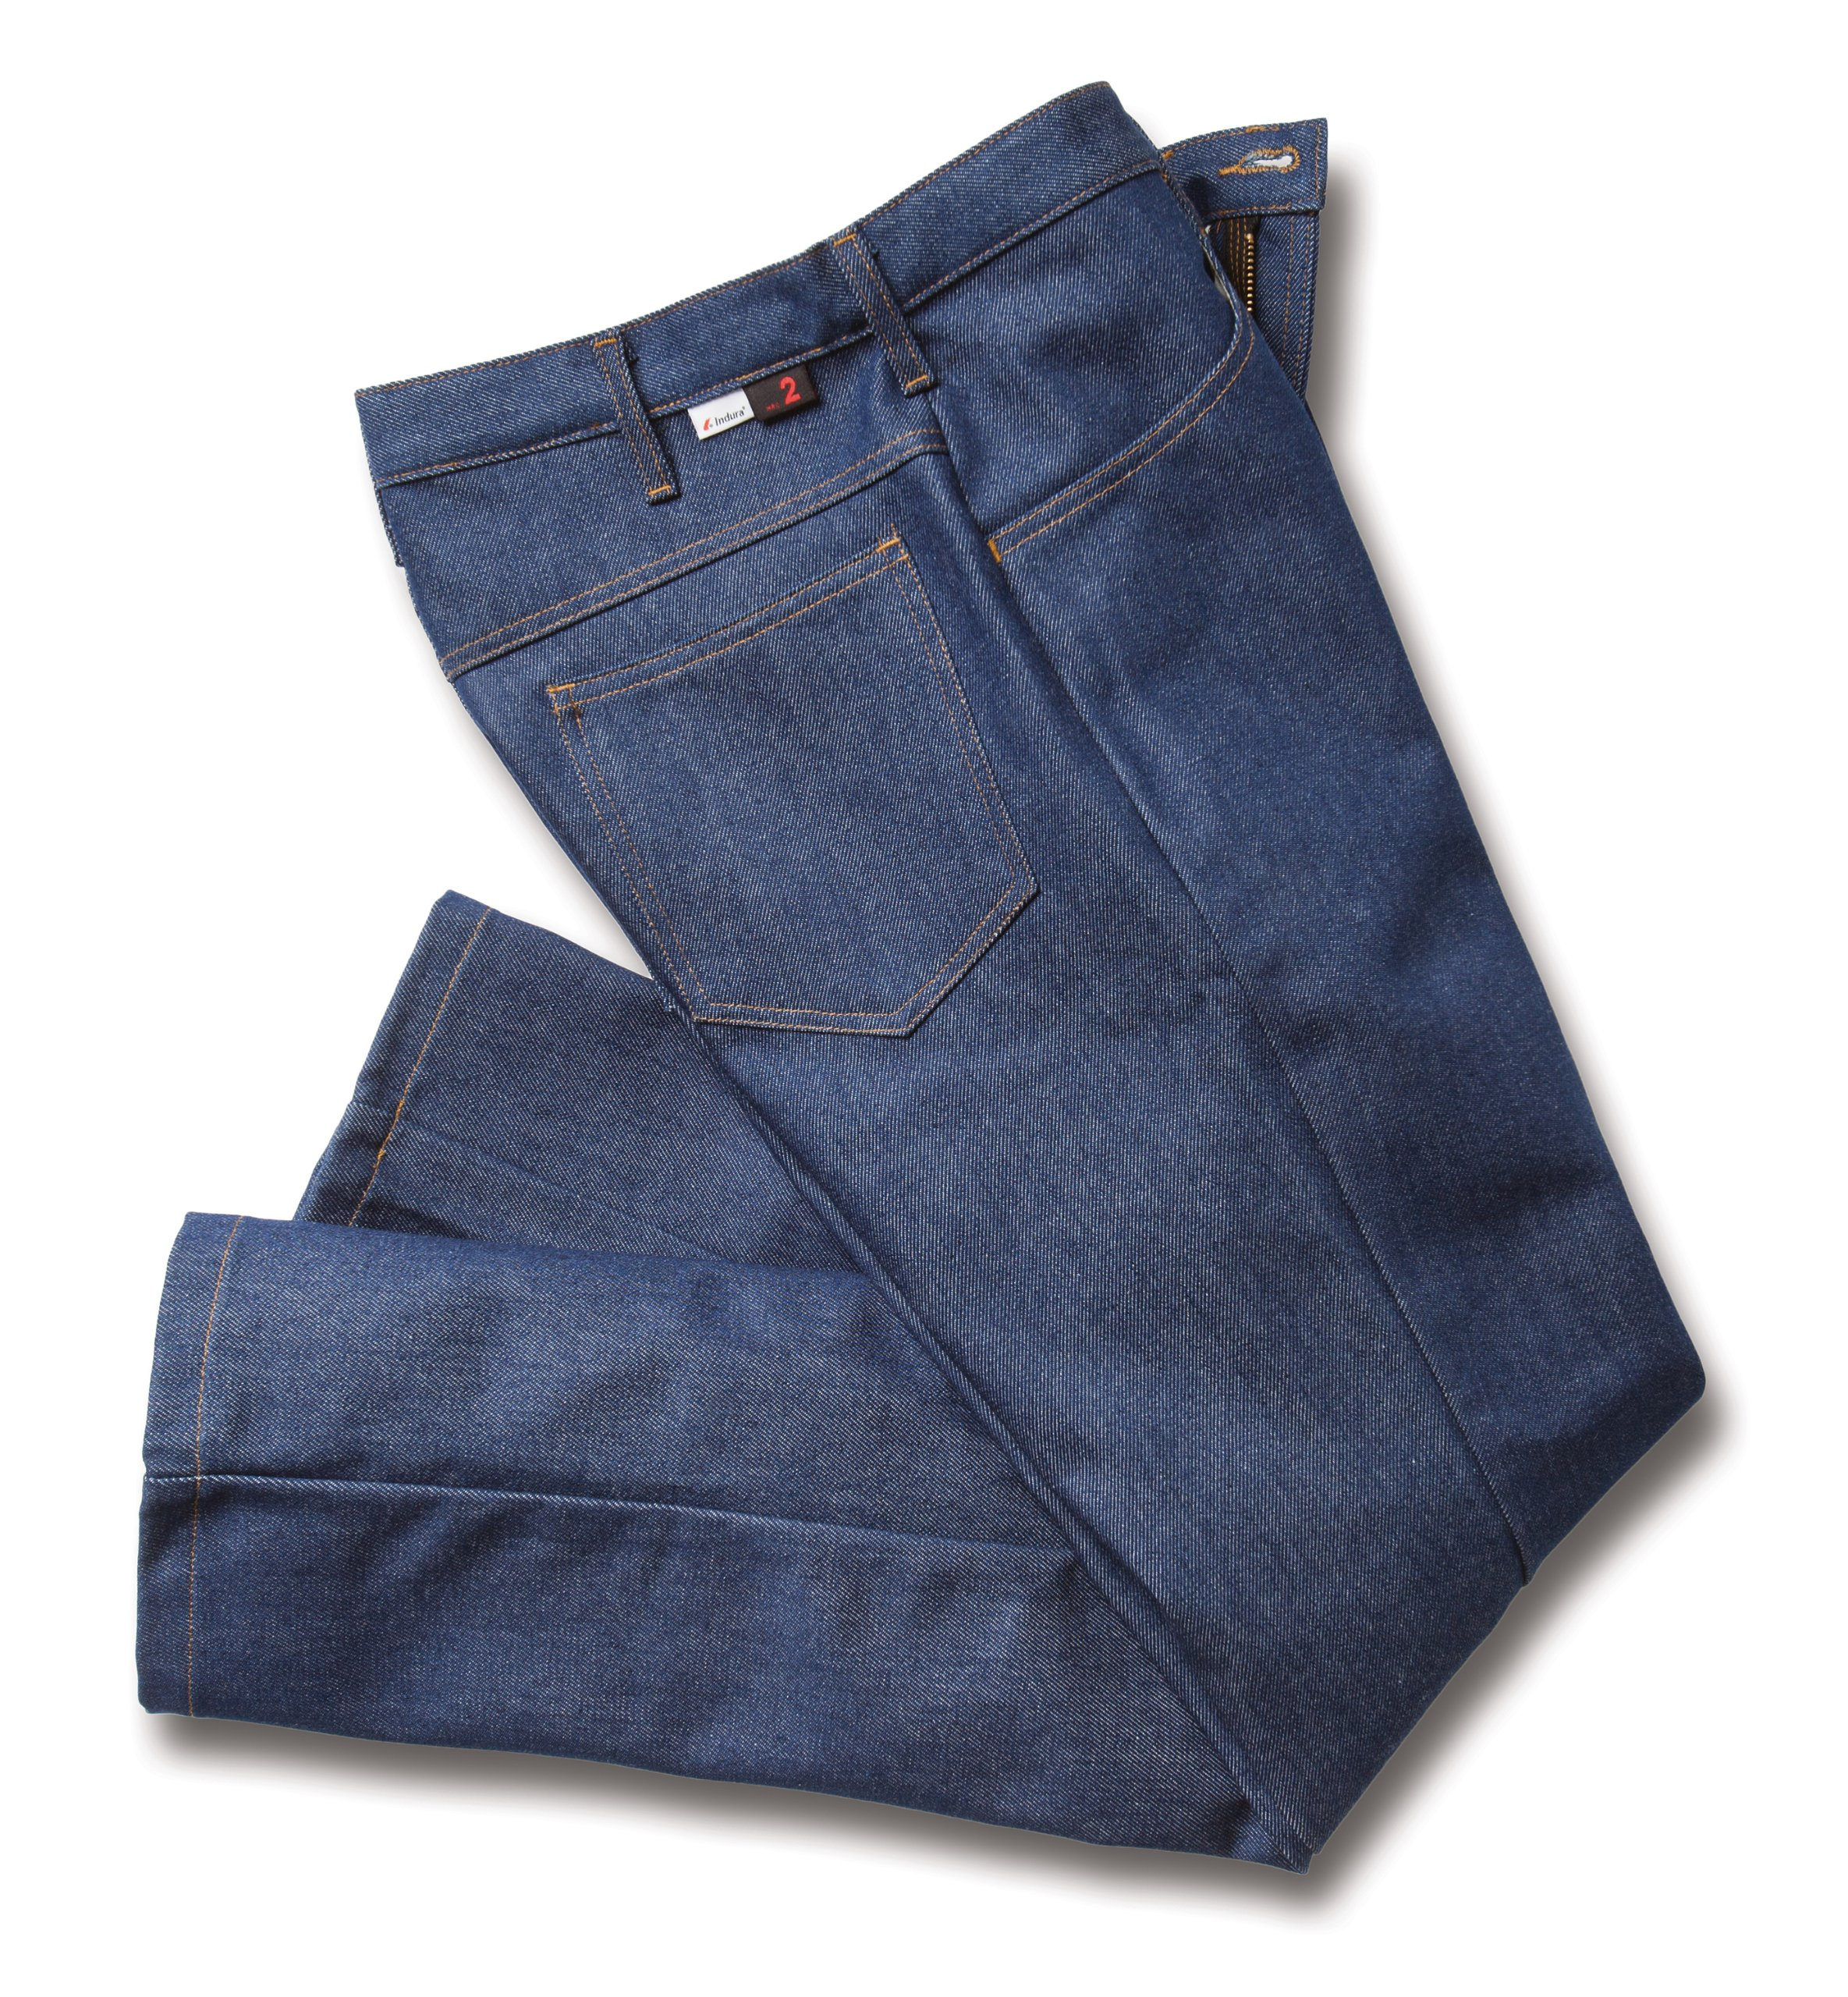 Workrite 428UT12SD36-30 Flame Resistant 12 oz UltraSoft Relaxed-Fit Jean Pant, 36 Waist Size, 30 Inseam, Soft Denim